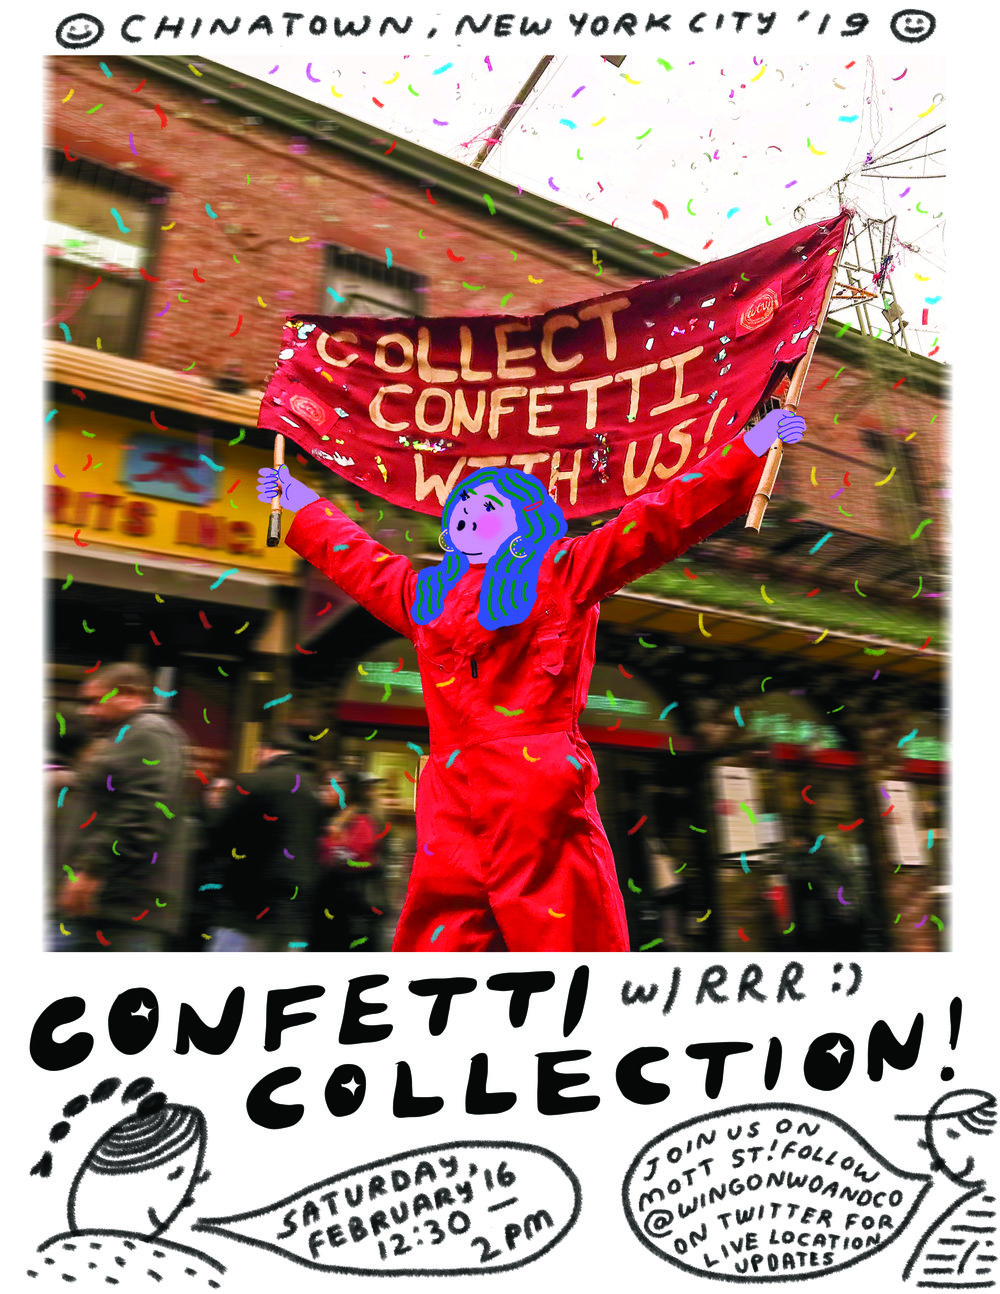 RRR 2019 confetti collection flyer.jpg